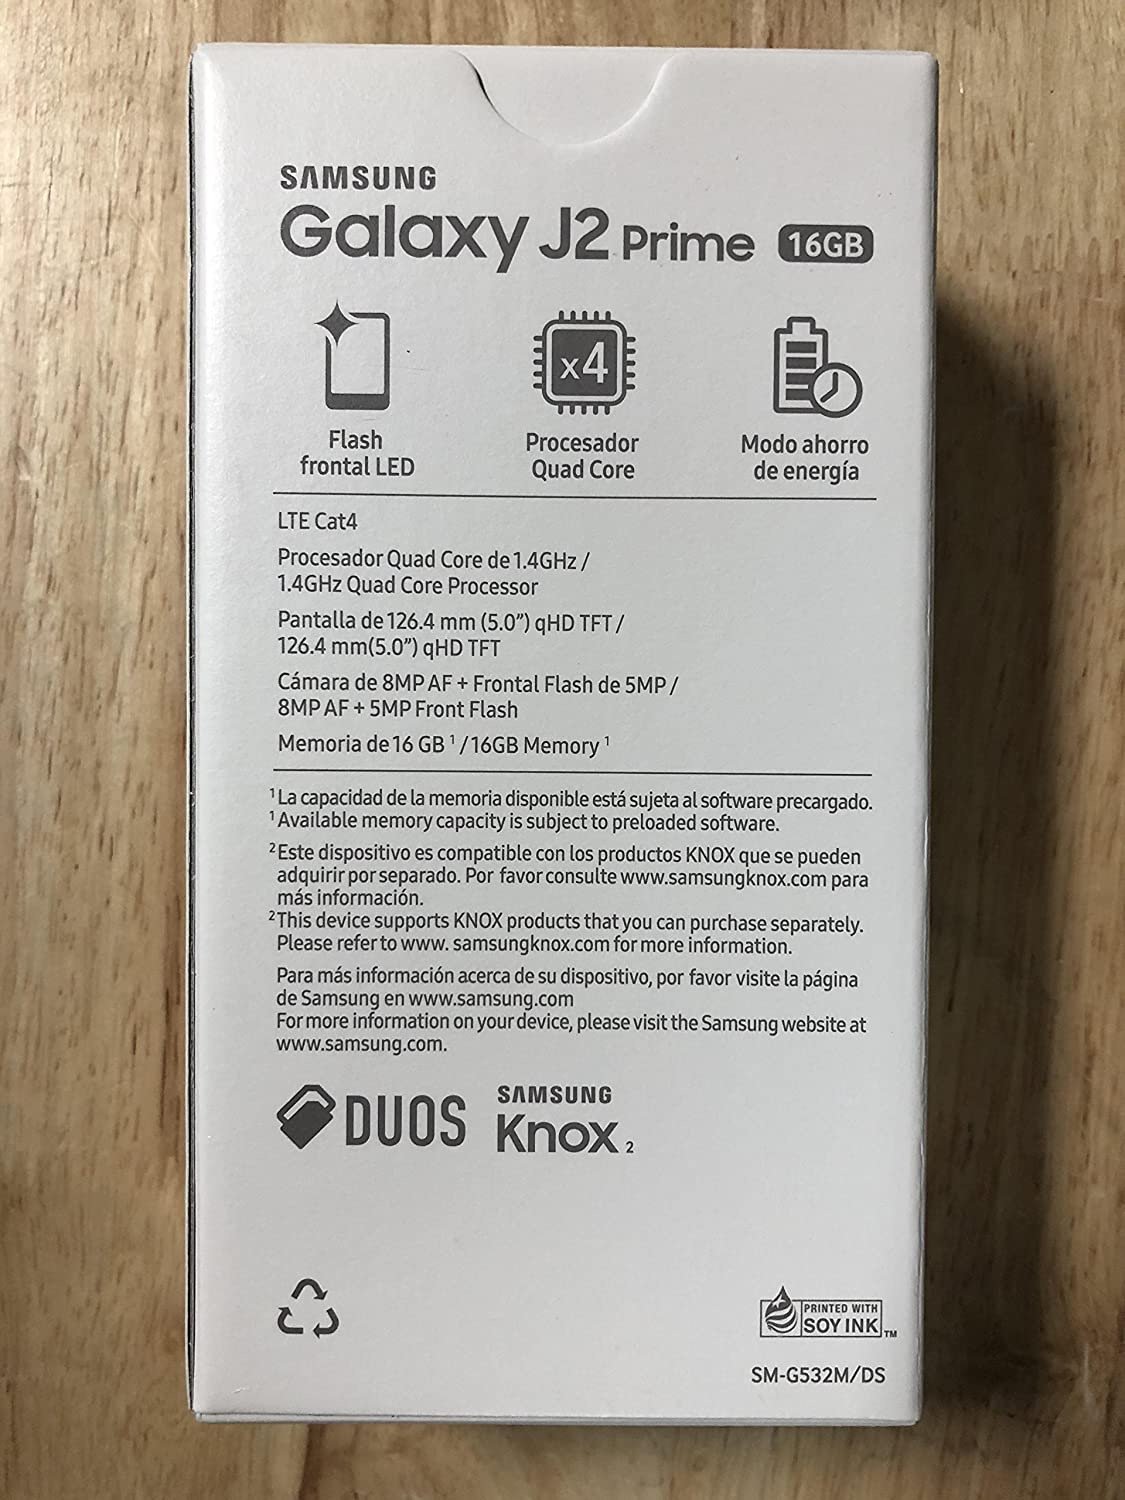 Samsung Galaxy J2 Prime 16gb 50 4g Lte Gsm Dual Sim S8 Edge Plus 62ampquot 4 64gb 12 8mp Factory Unlocked International Version No Warranty G532m Ds Black Cell Phones